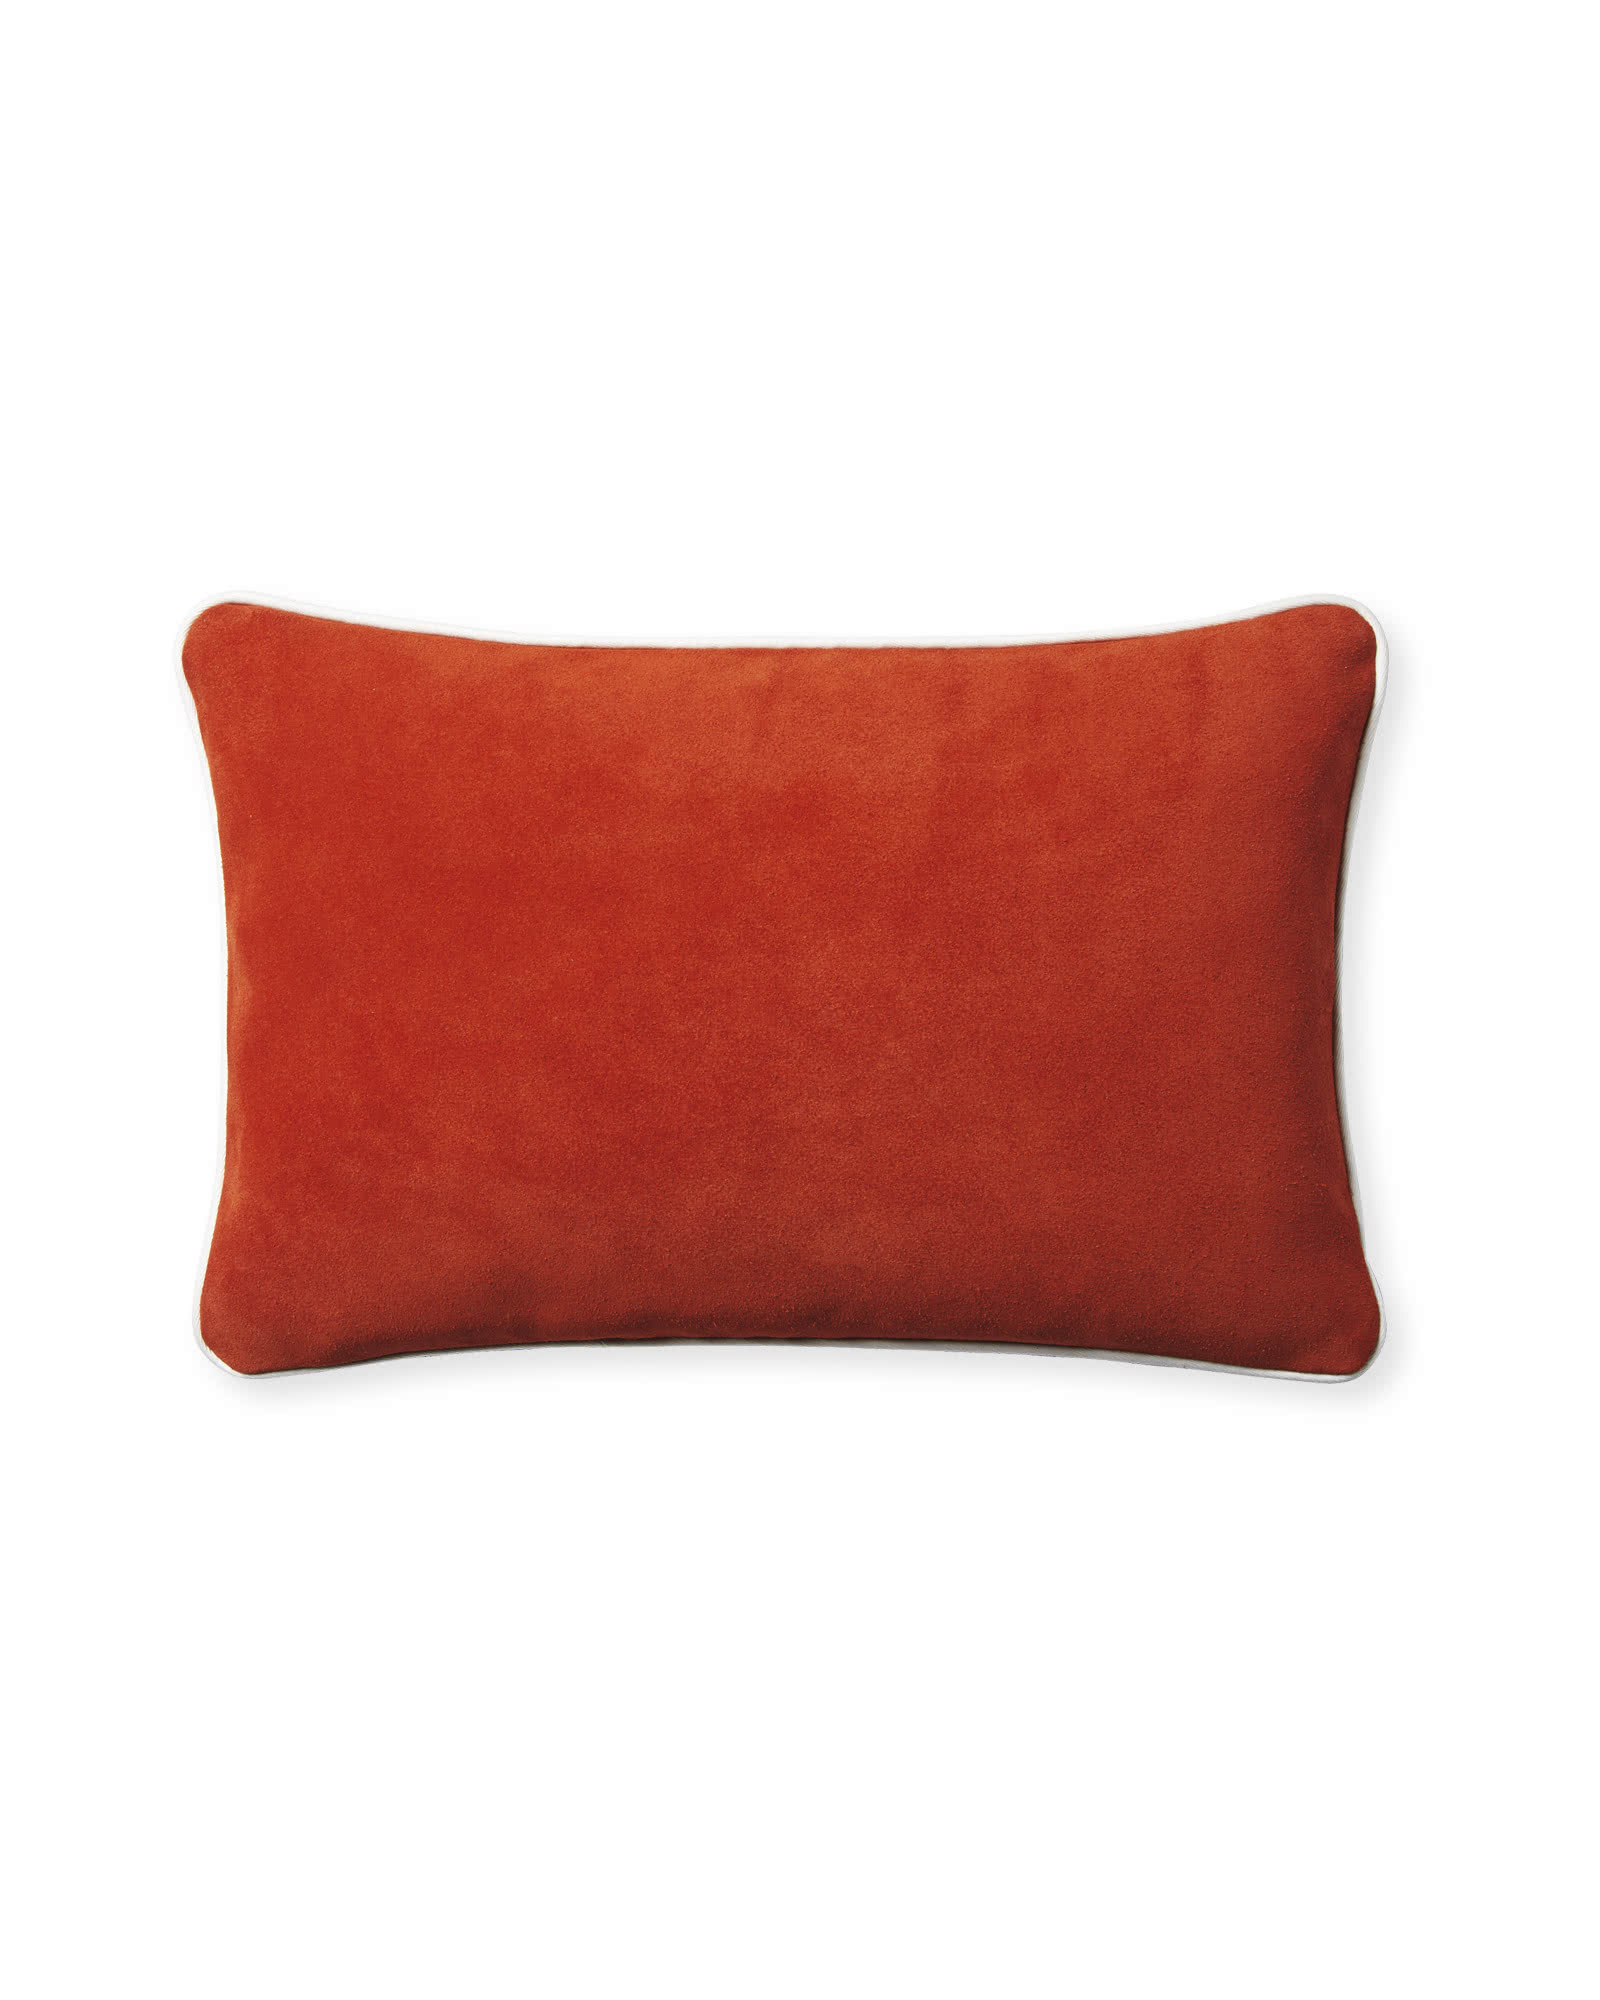 Suede Pillow Cover, Flame